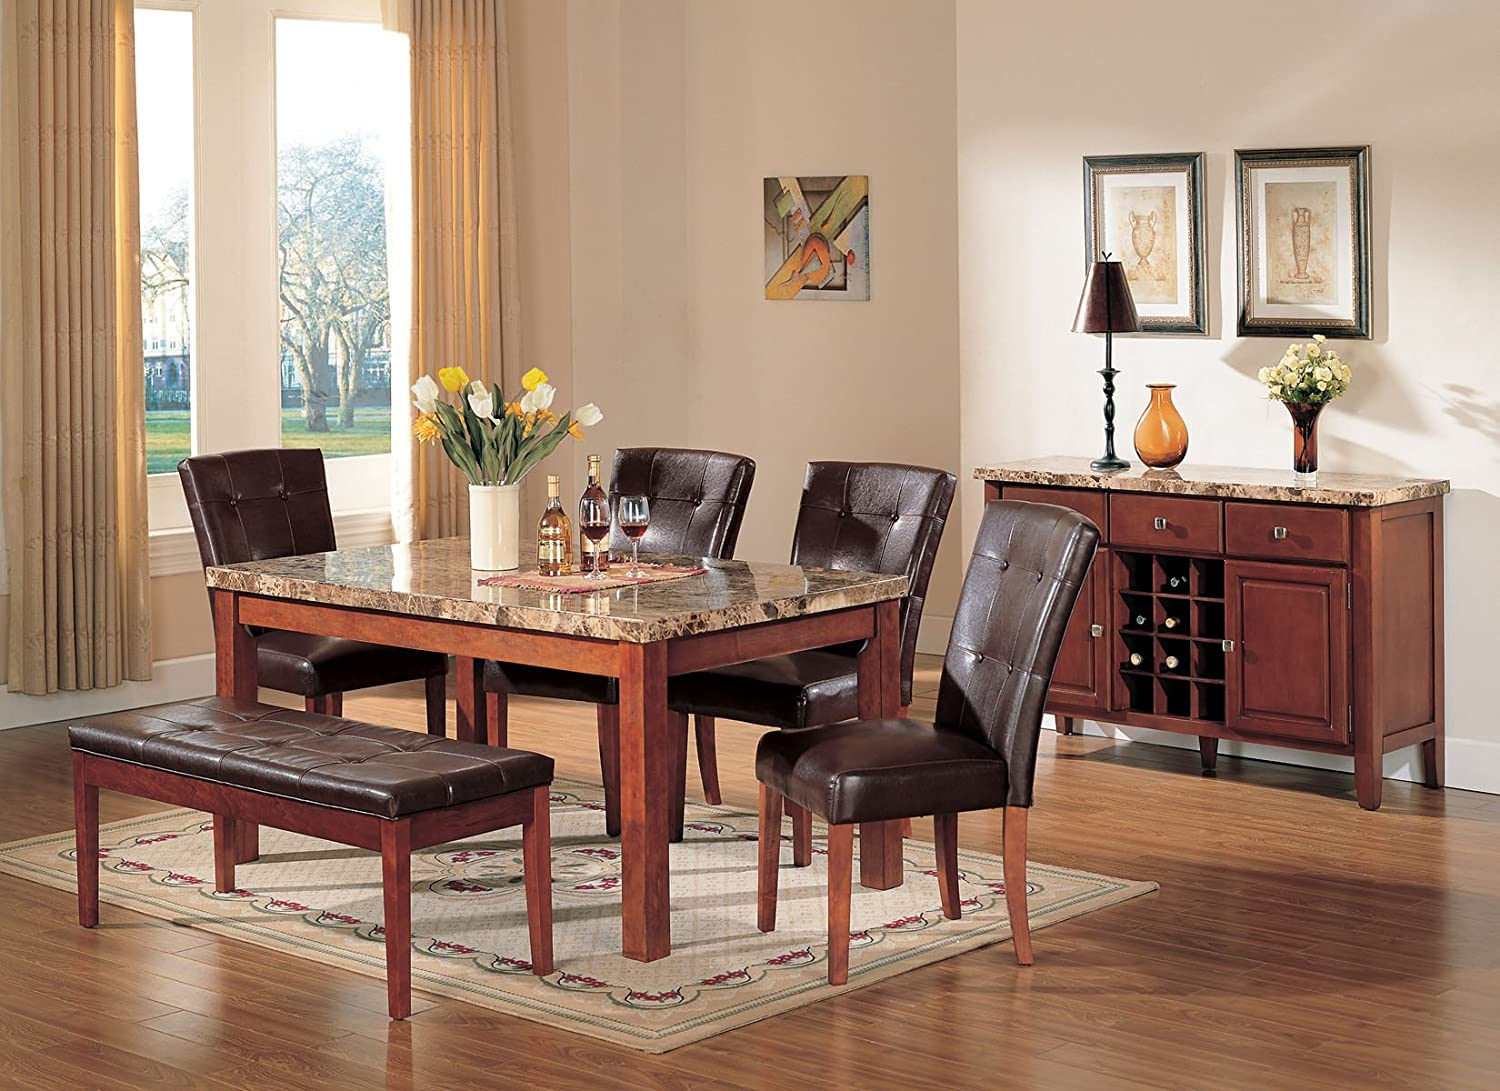 Amazon.com - ACME Bologna Brown Marble Top Dining Table Cherry Finish - Table u0026 Chair Sets & Amazon.com - ACME Bologna Brown Marble Top Dining Table Cherry ...